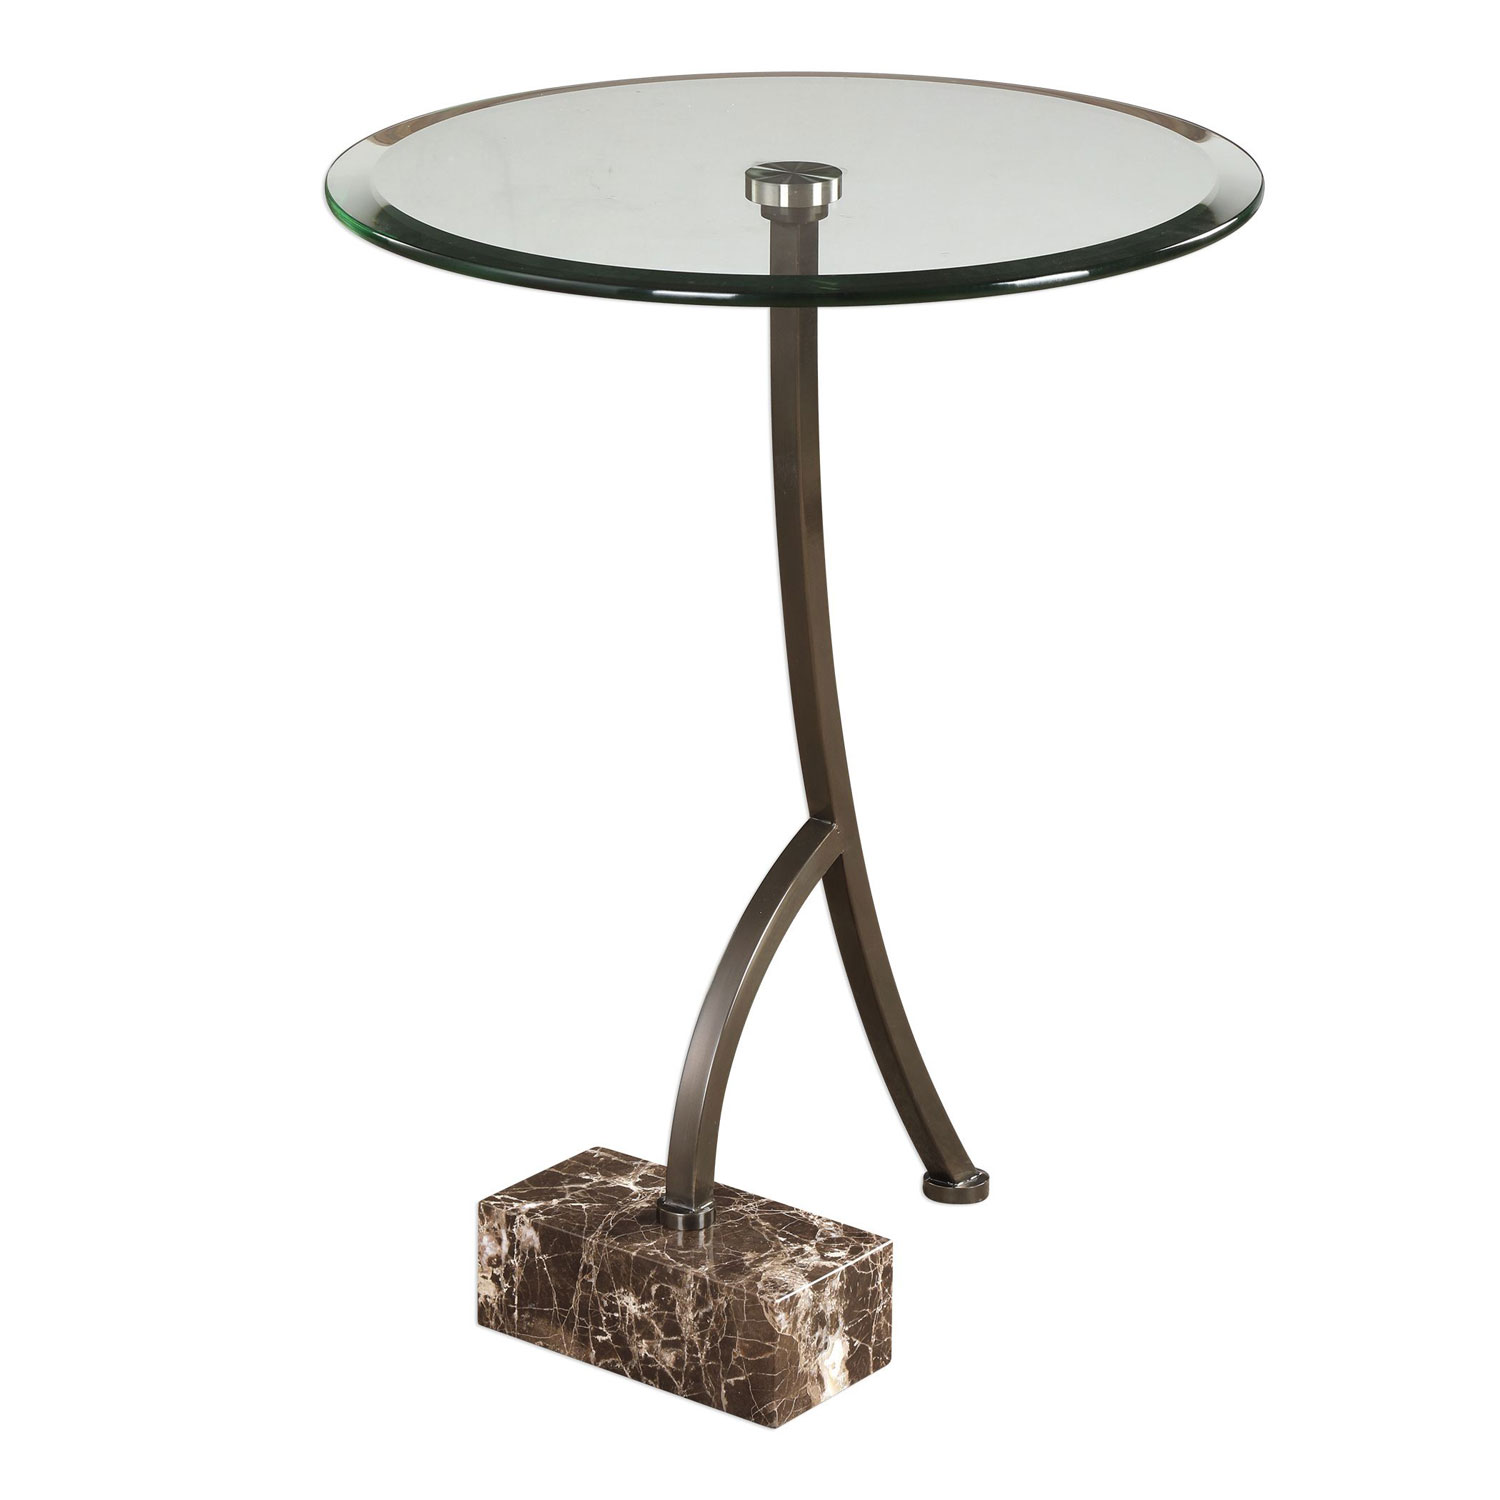 uttermost levi round bronze accent table bellacor rubati hover zoom allen cocktail popular end tables small desk with drawers bedside cover kitchen sets under tiffany shades home